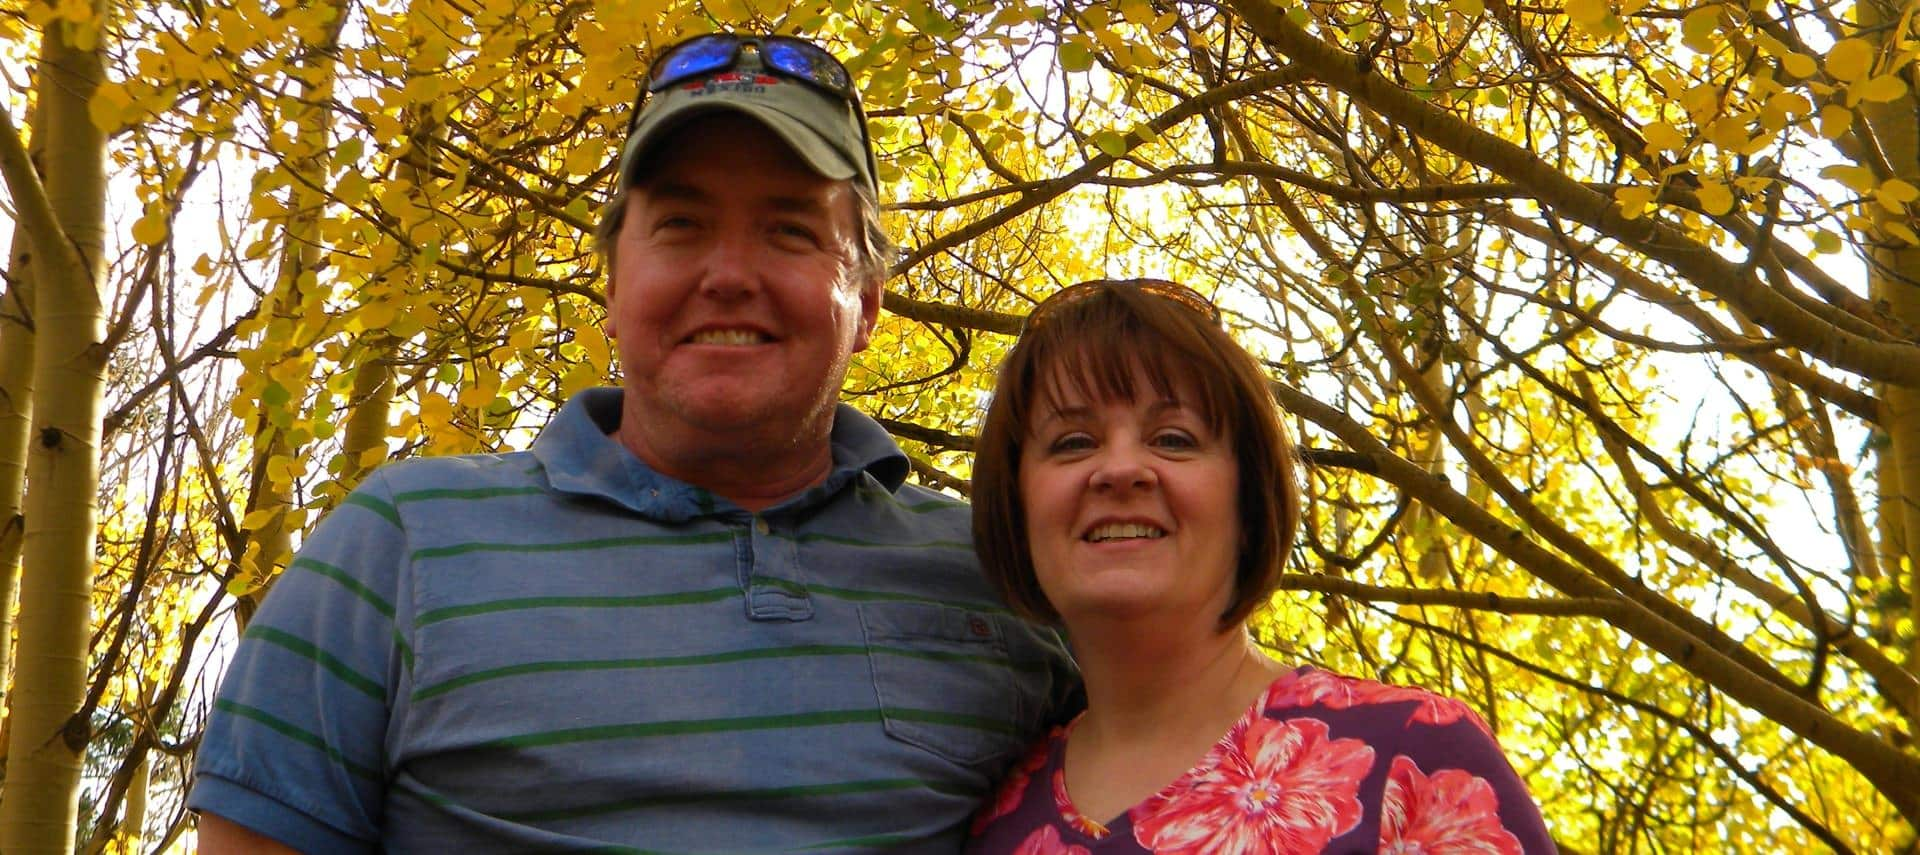 Trey and Annette standing near trees with green leaves